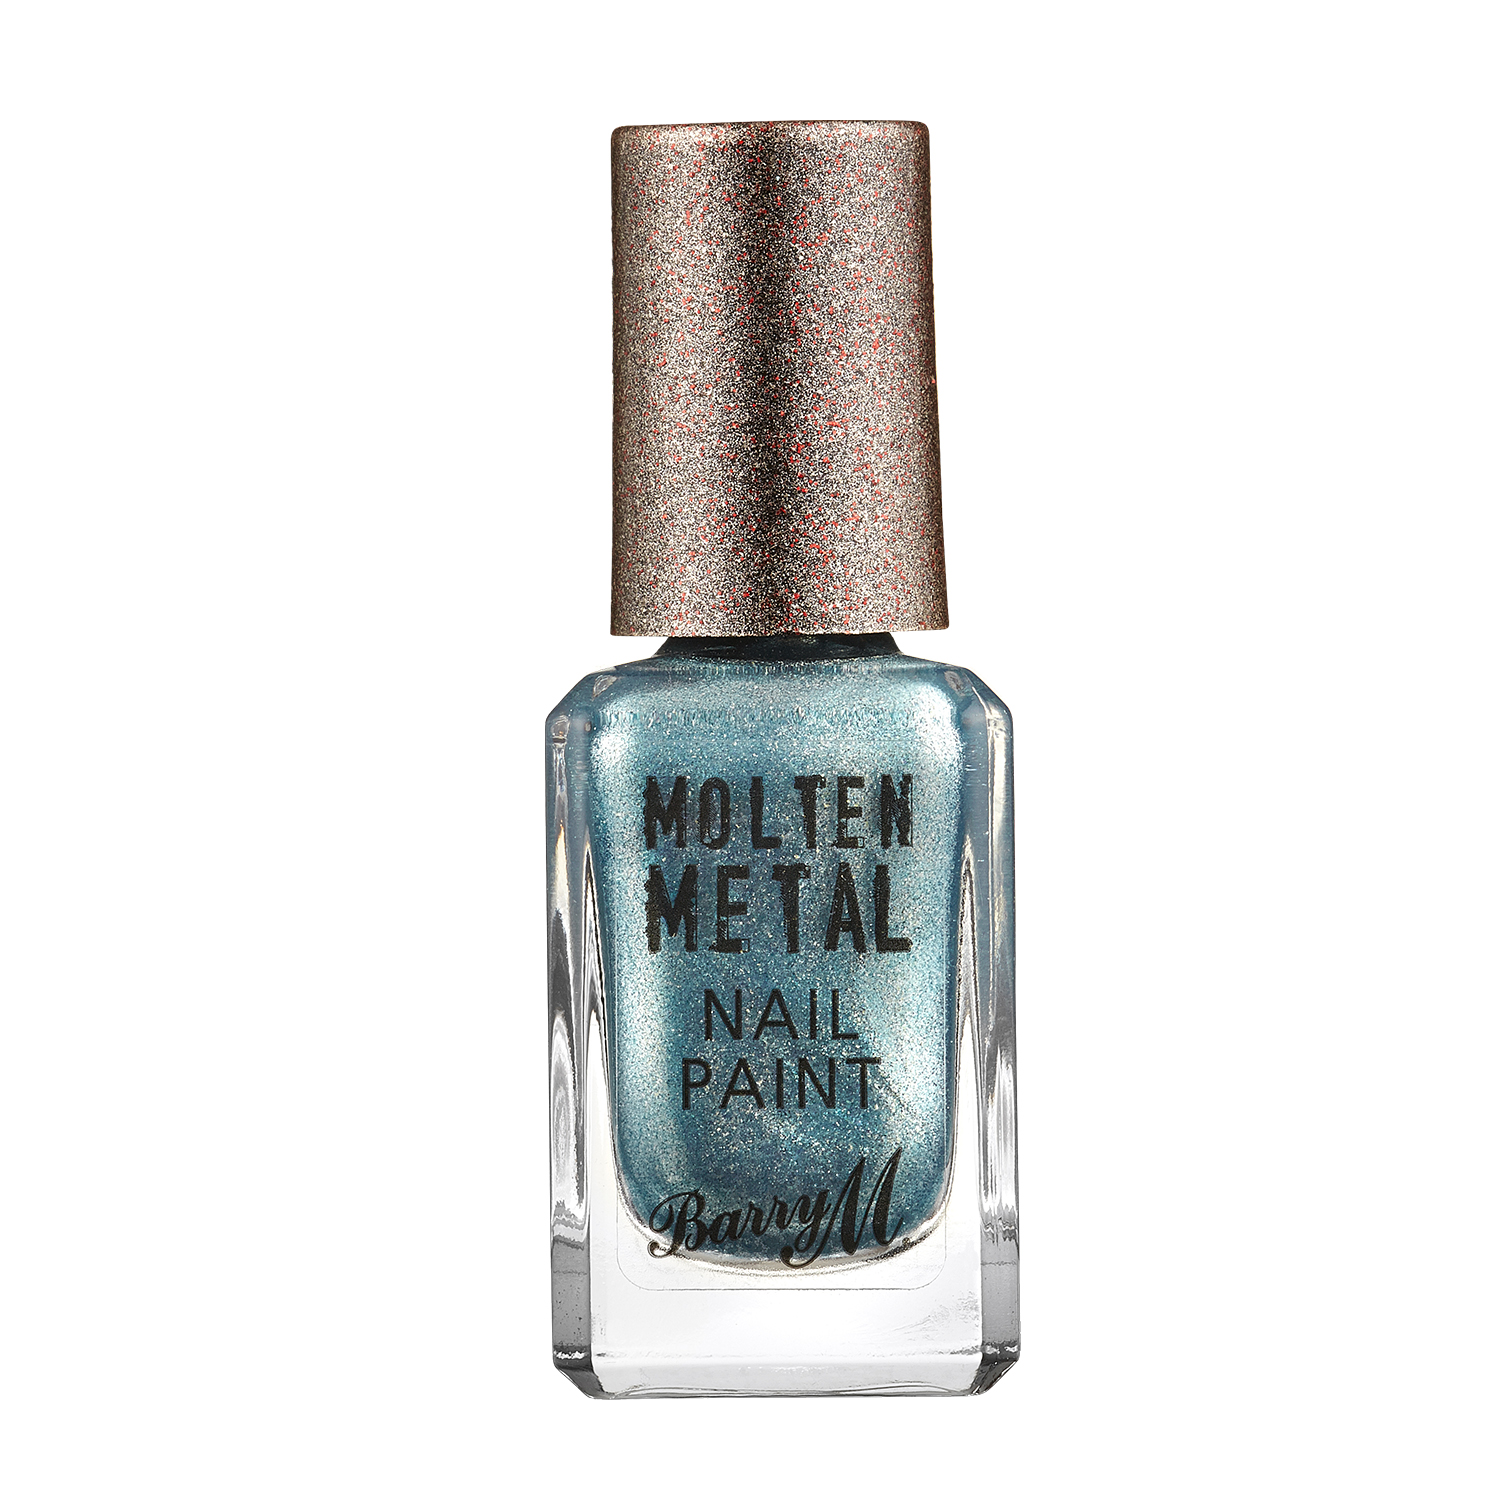 Barry M Molten Metal Nail Paint